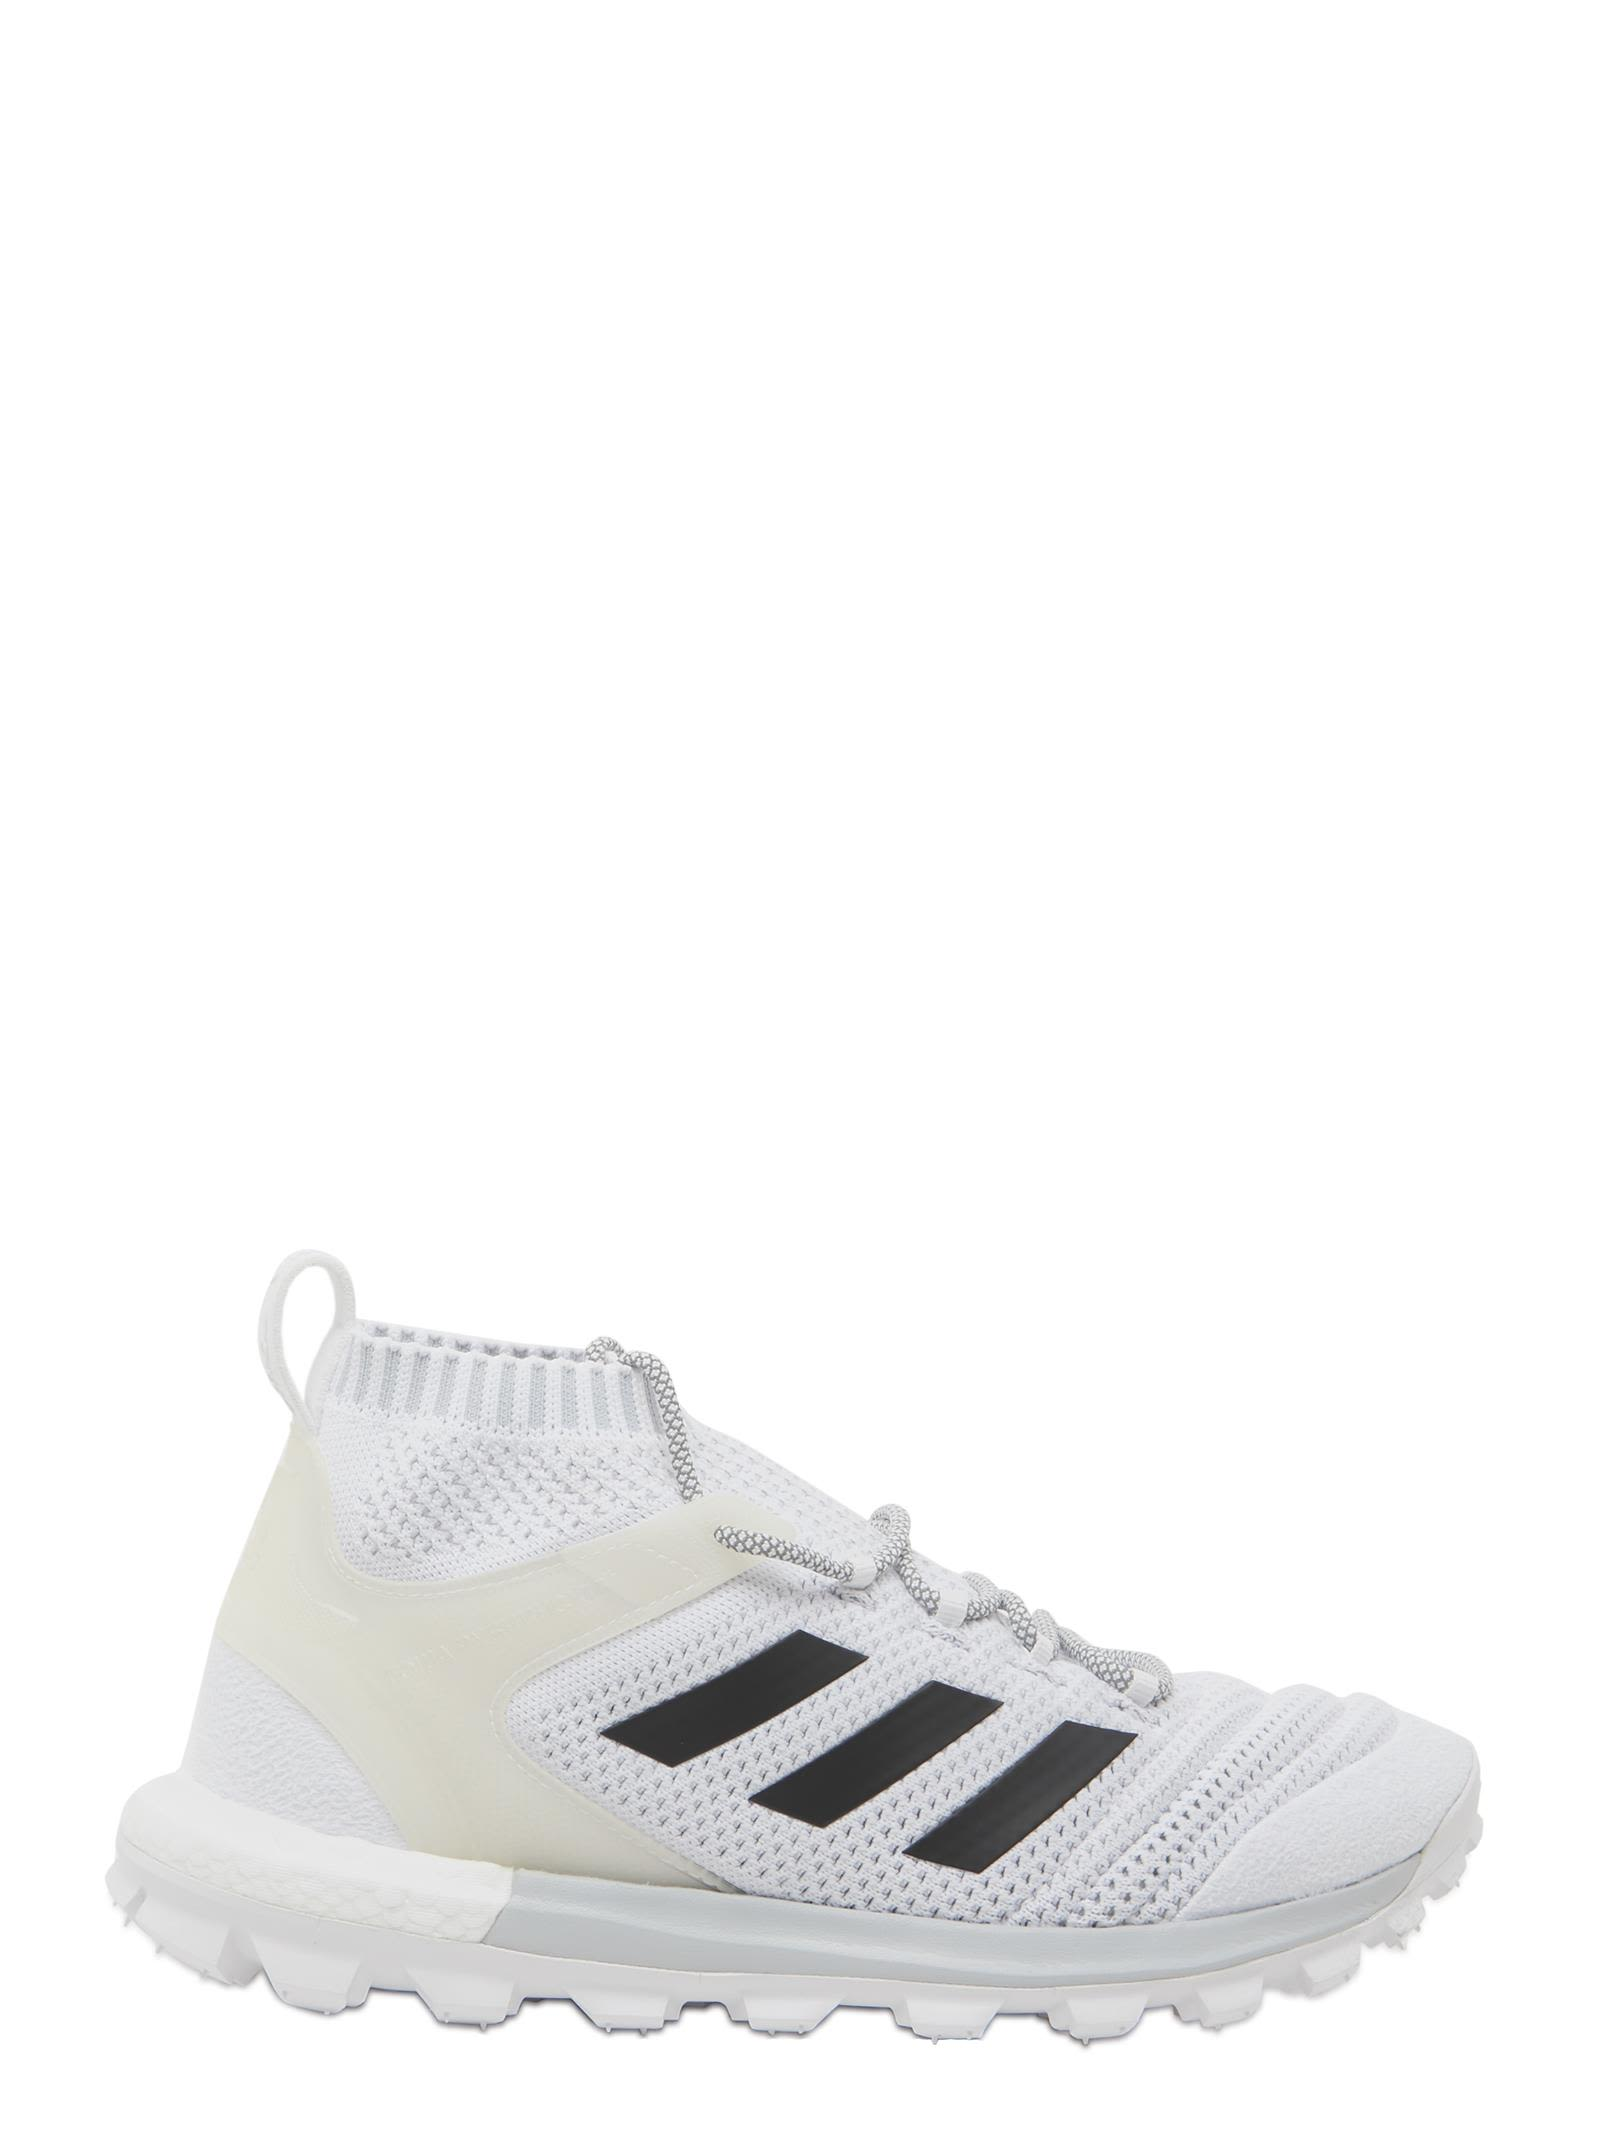 GOSHA RUBCHINSKIY MENS COPA SHOES